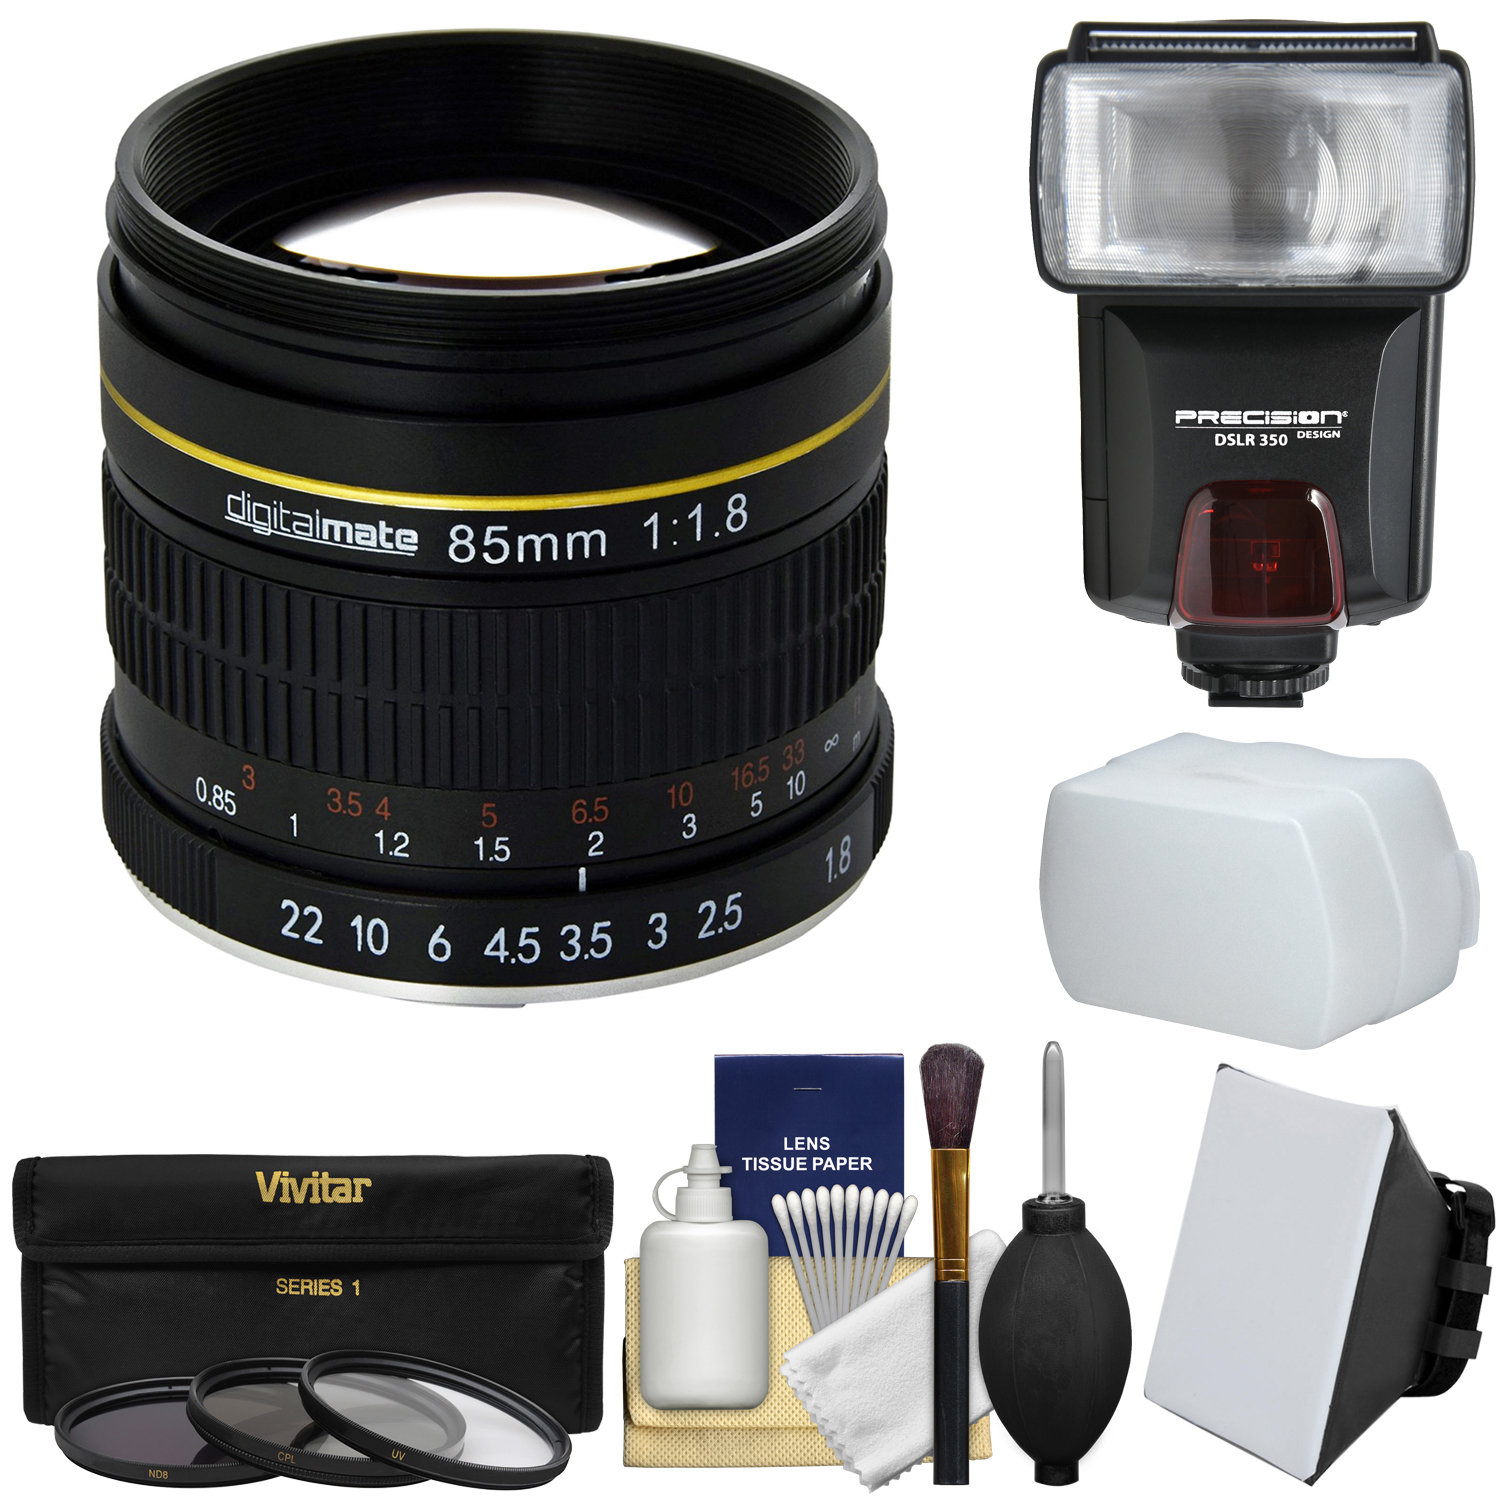 Digitalmate 85mm f/1.8 Aspherical Telephoto Lens with 3 UV/CPL/ND8 Filters + Flash + Diffusers + Kit for Canon EOS DSLR Cameras